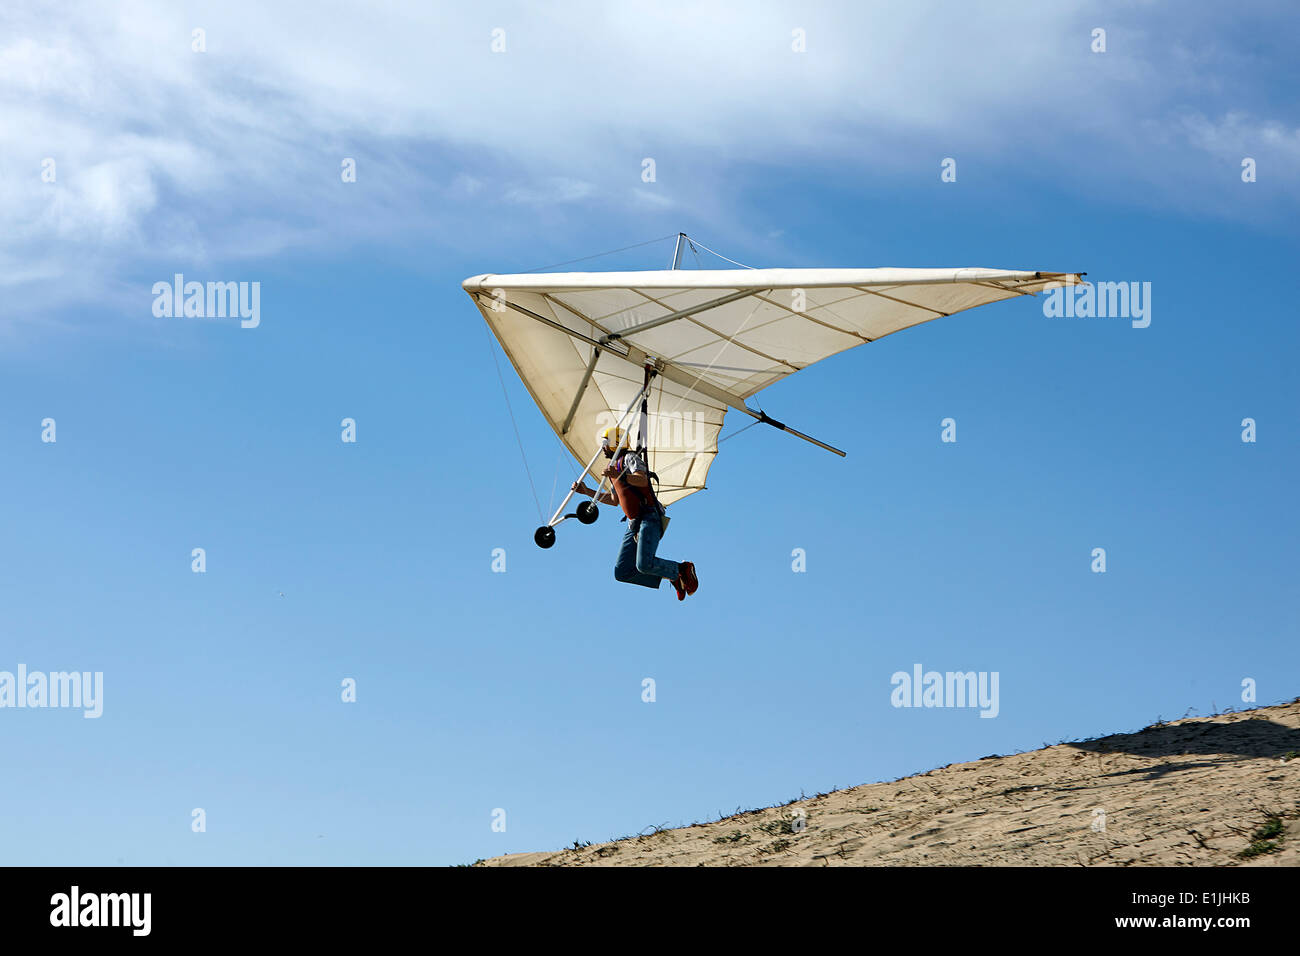 Man flying hang glider - Stock Image